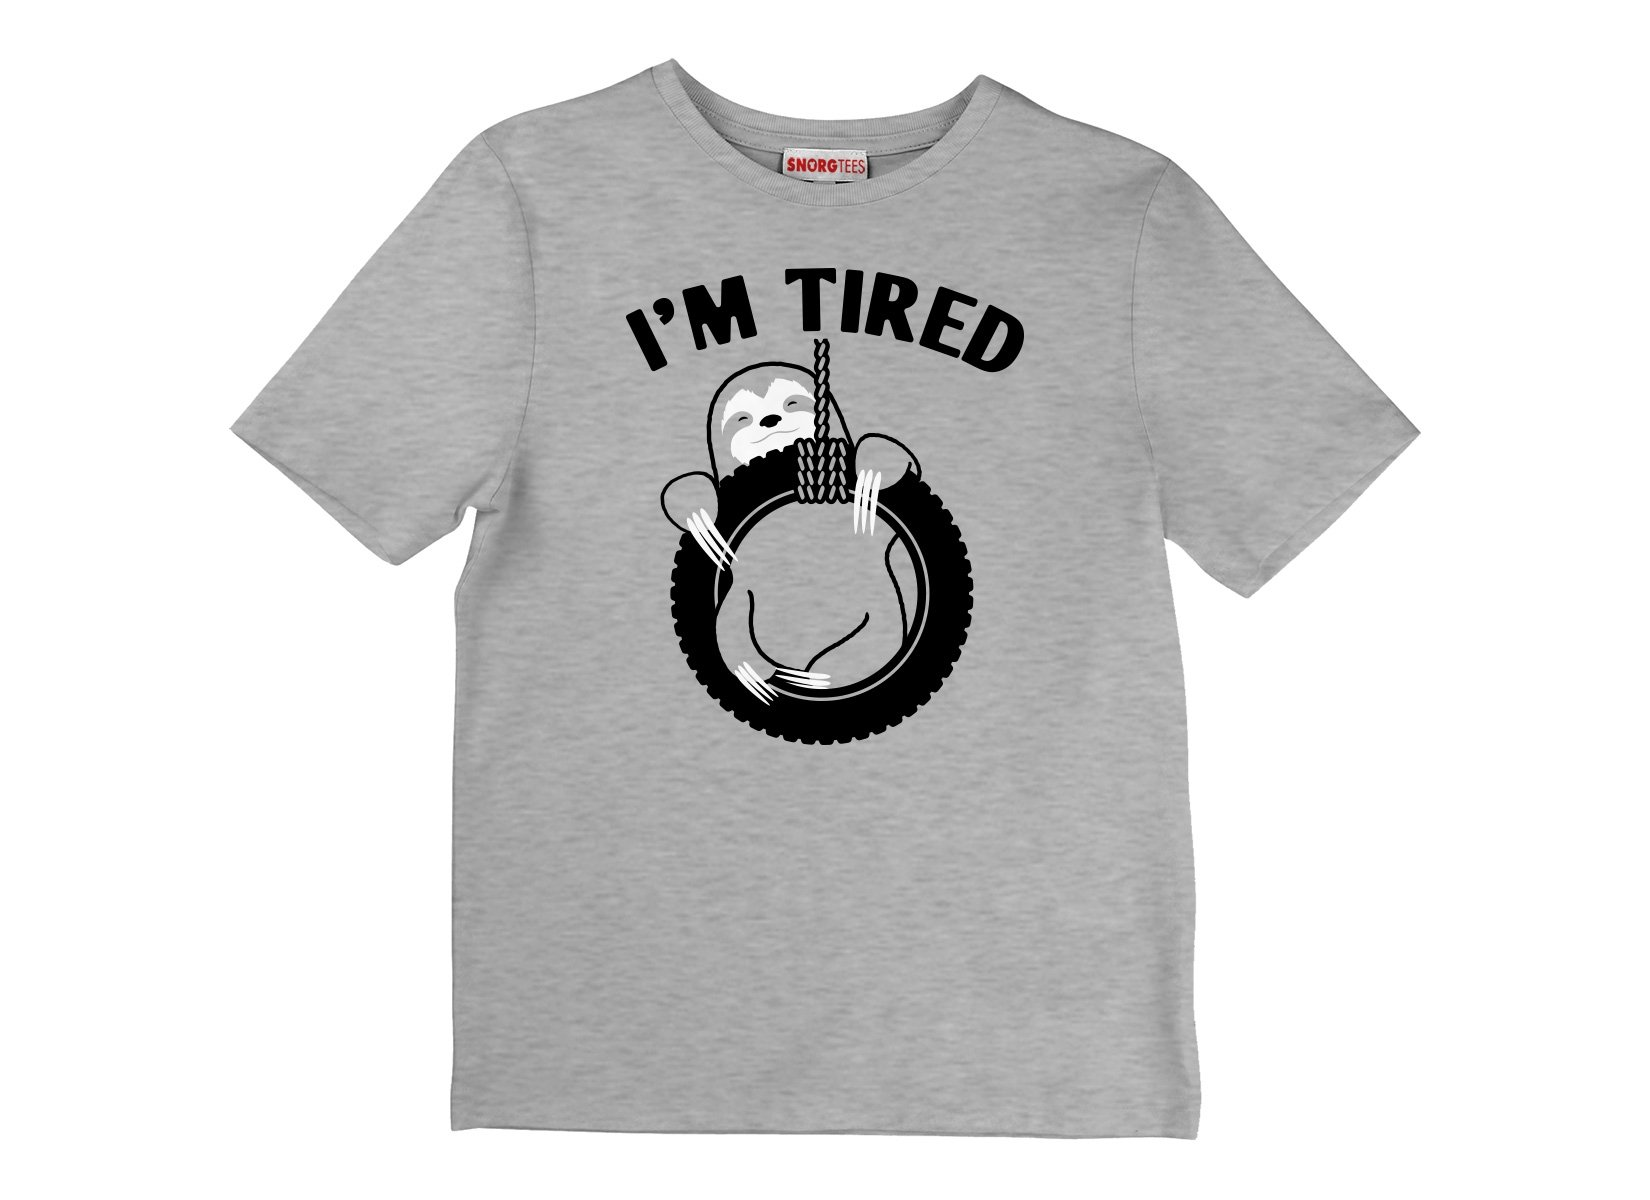 I'm Tired Sloth on Kids T-Shirt